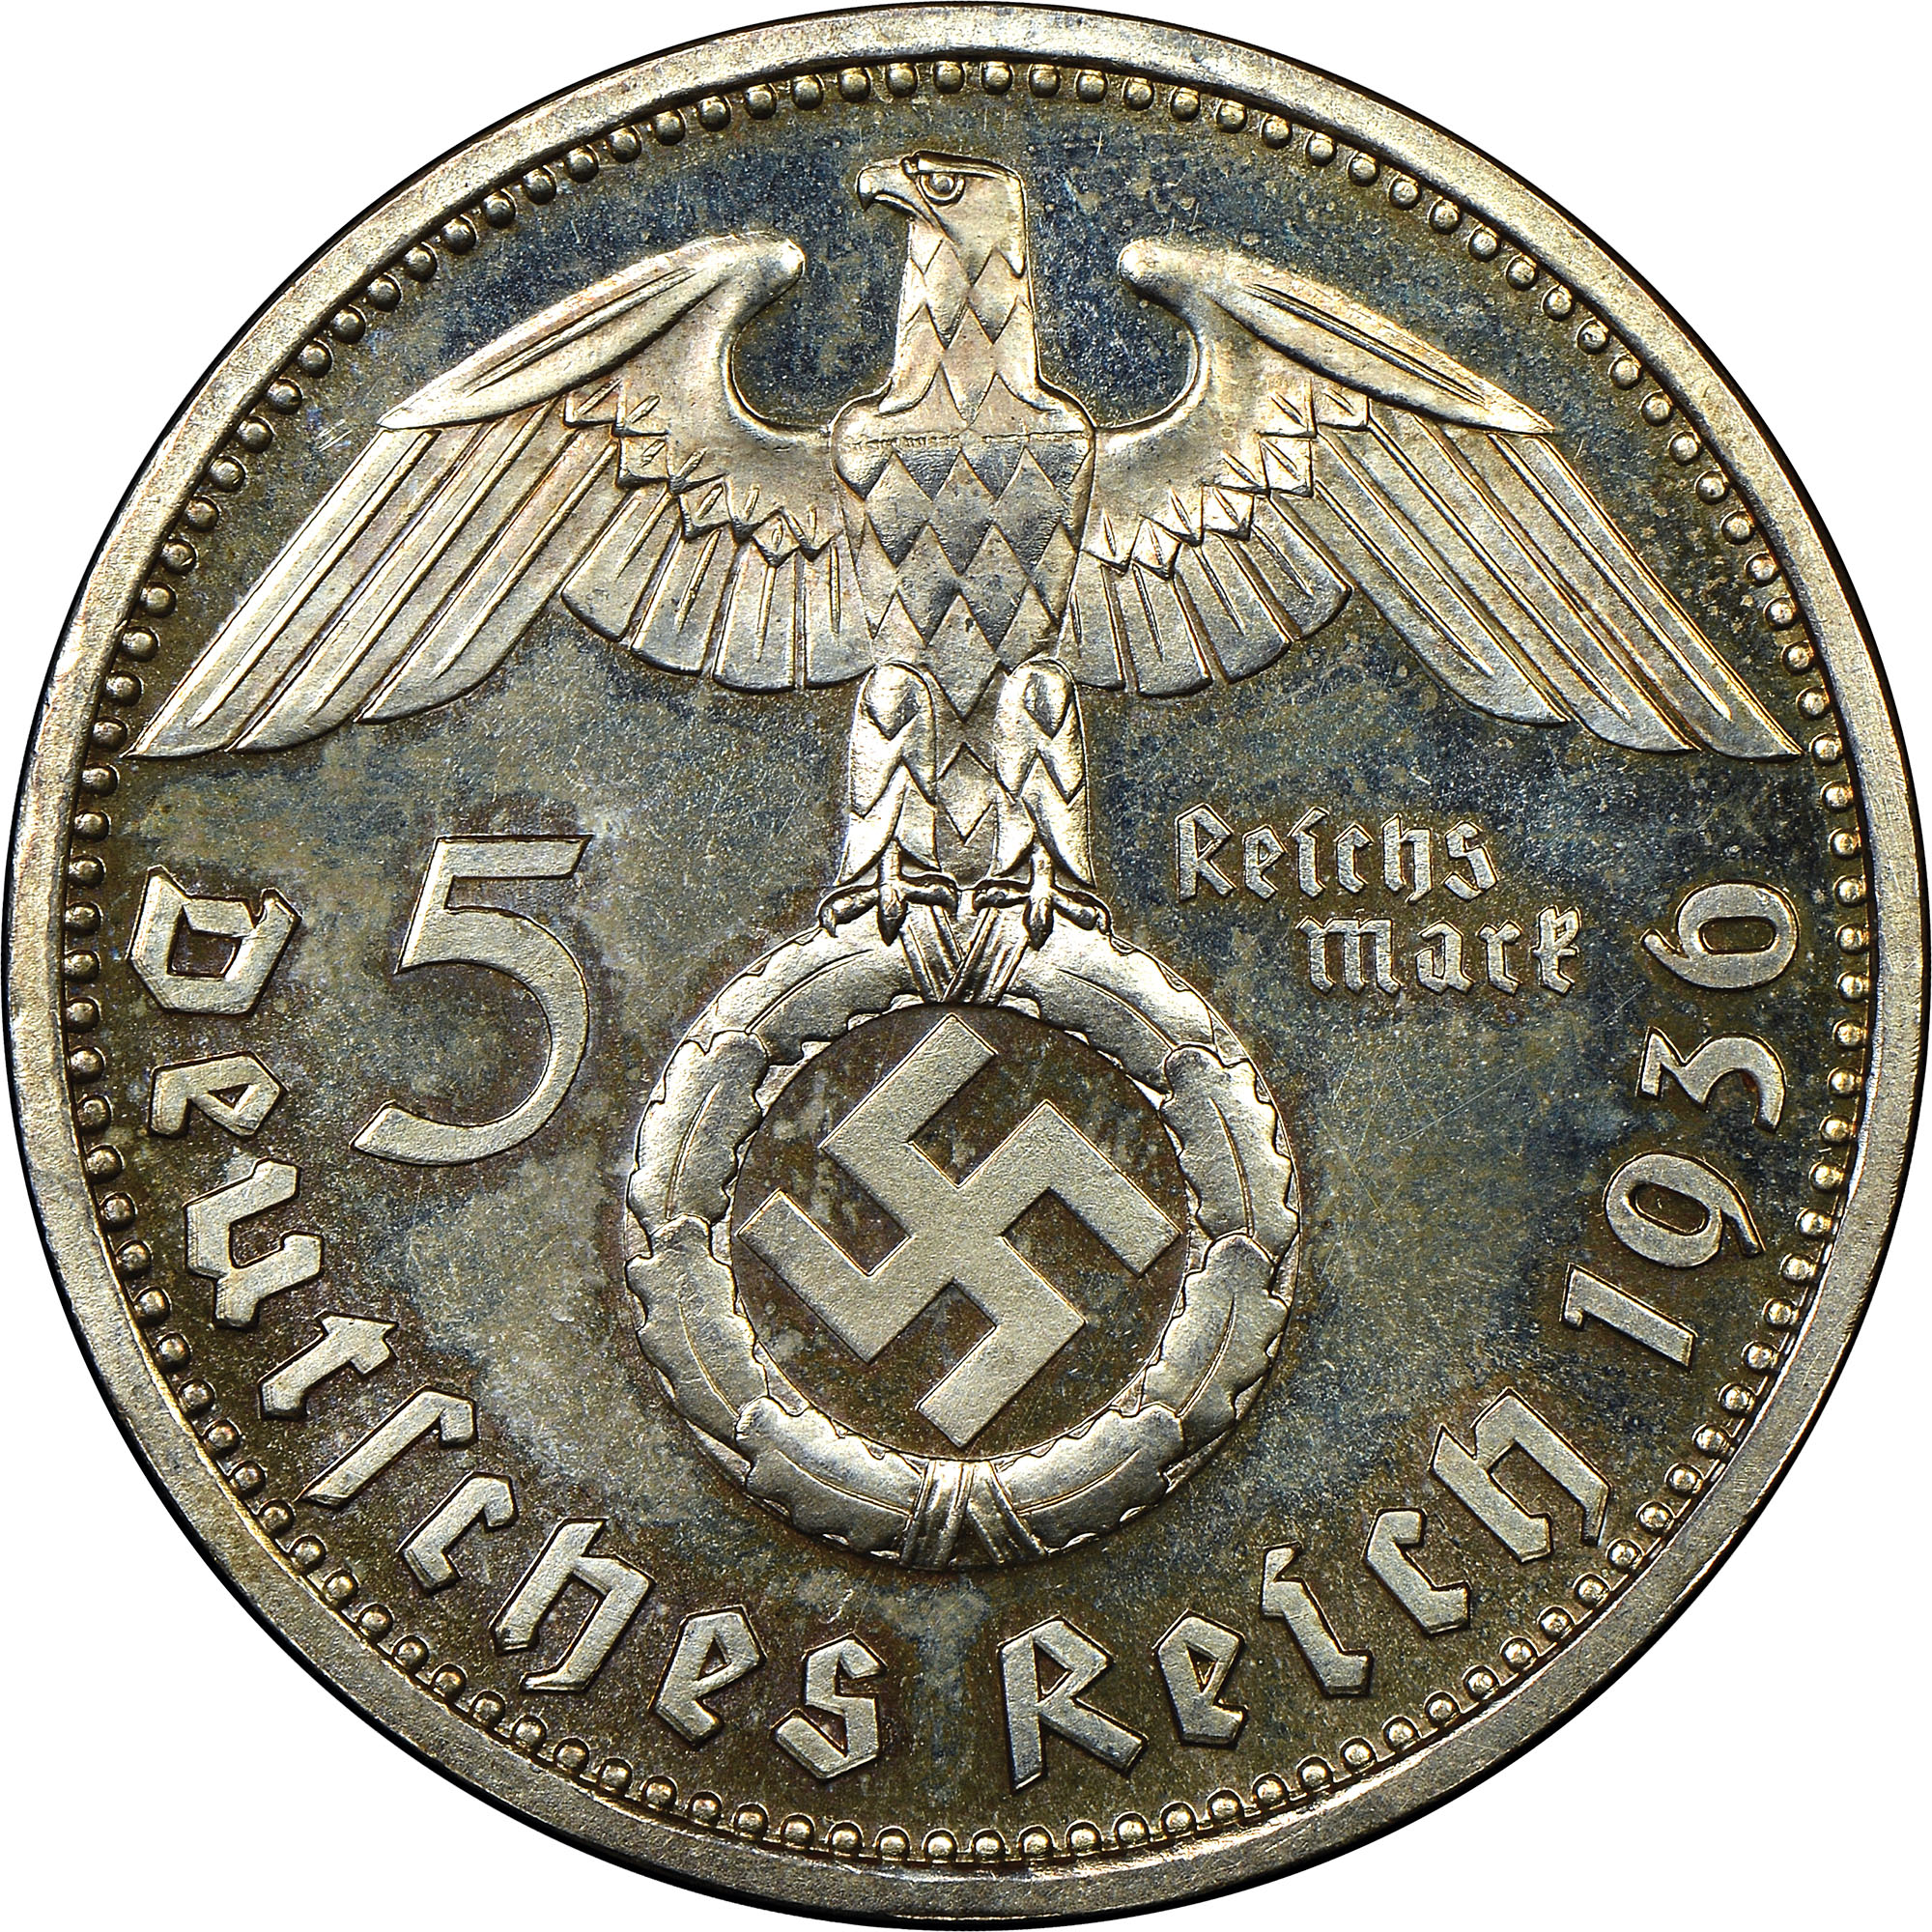 Germany - Third Reich 5 Reichsmark obverse